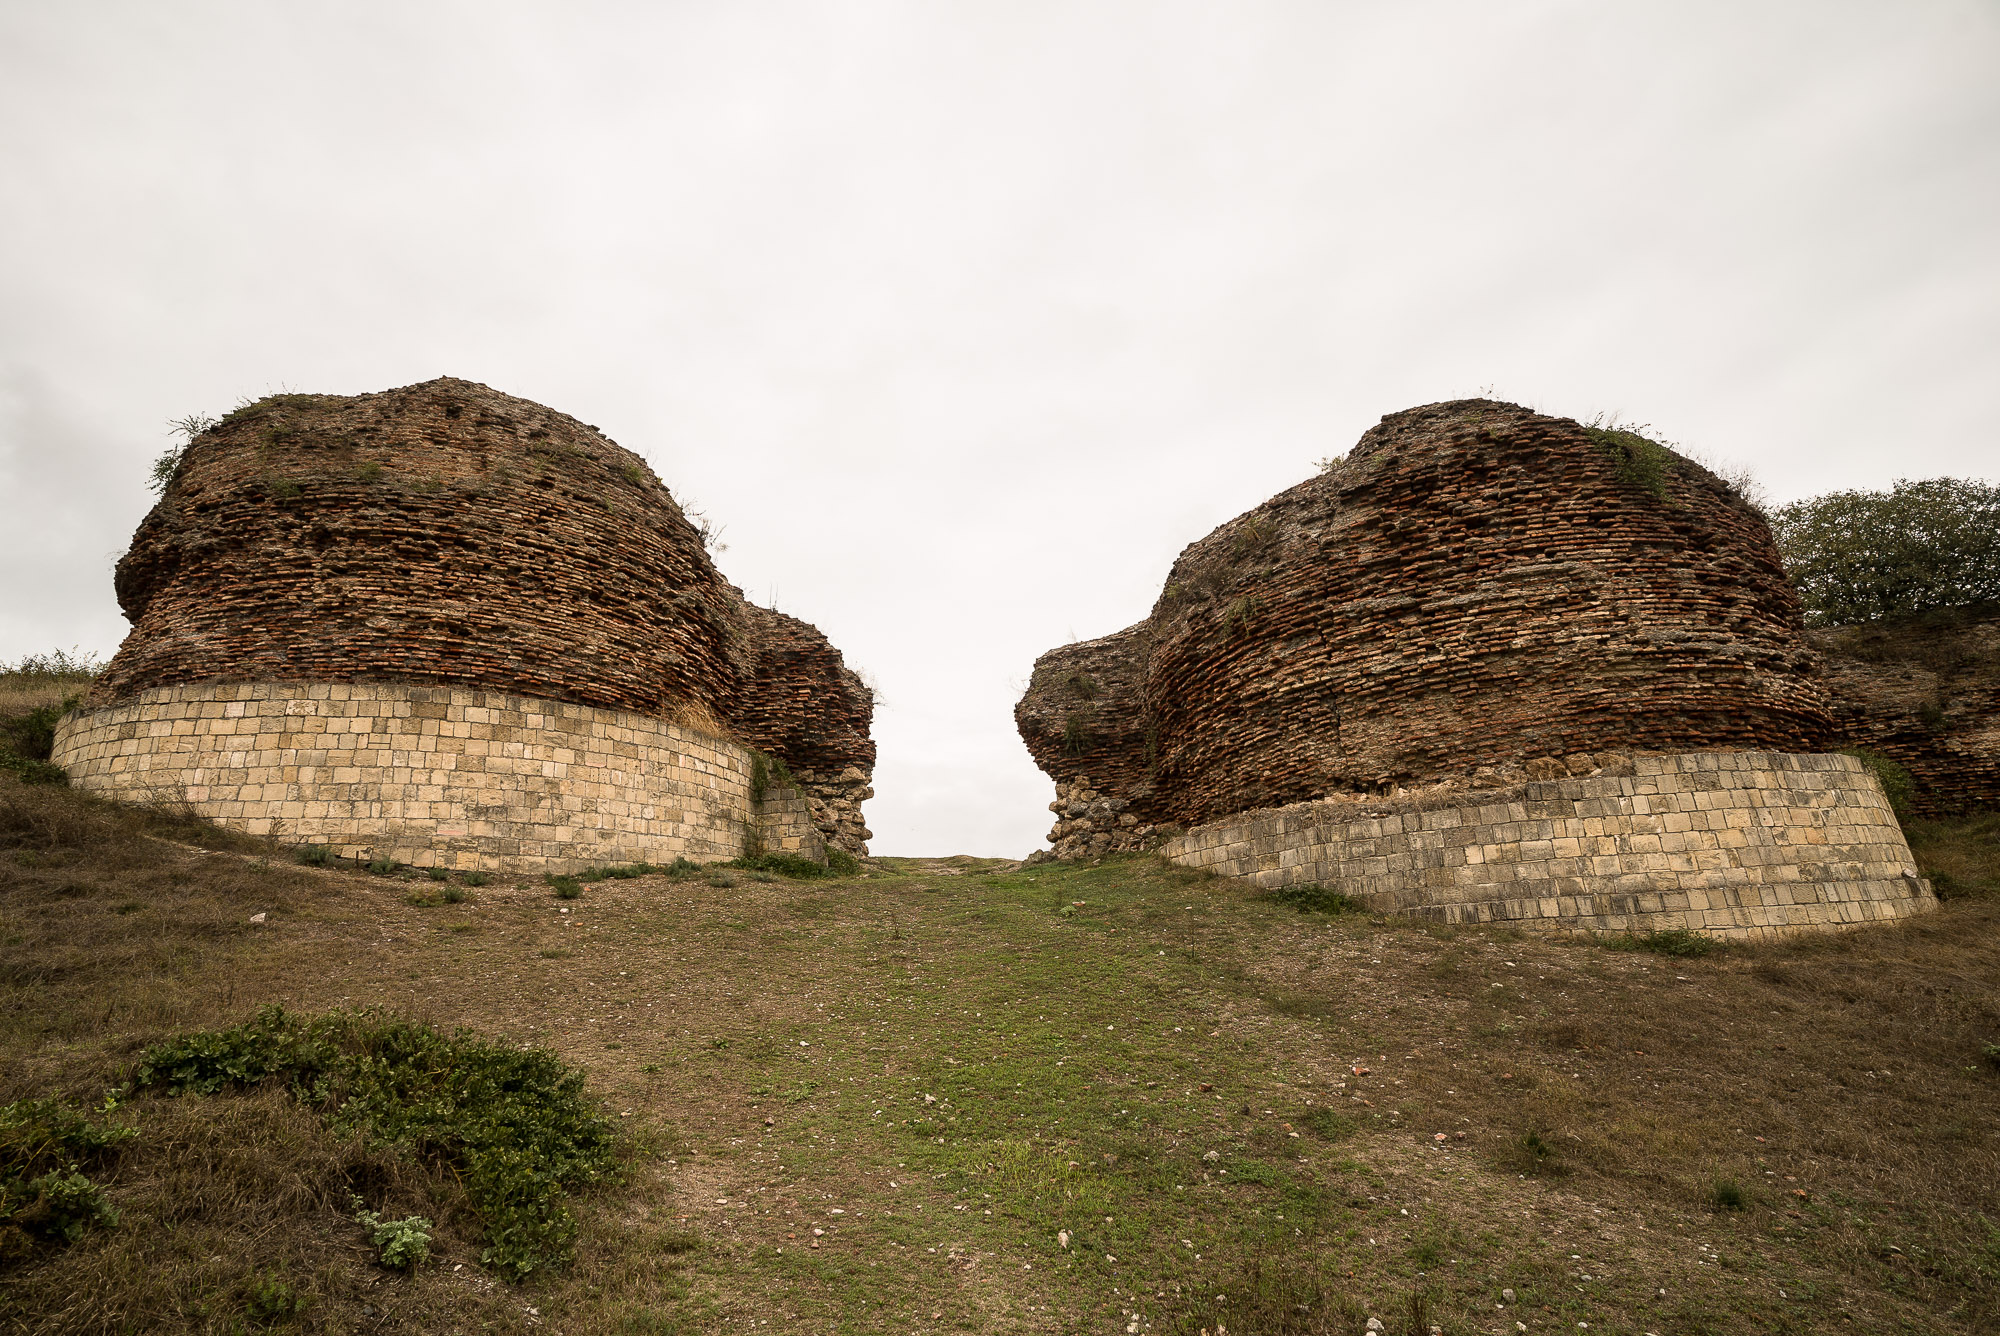 the remains of the city wall